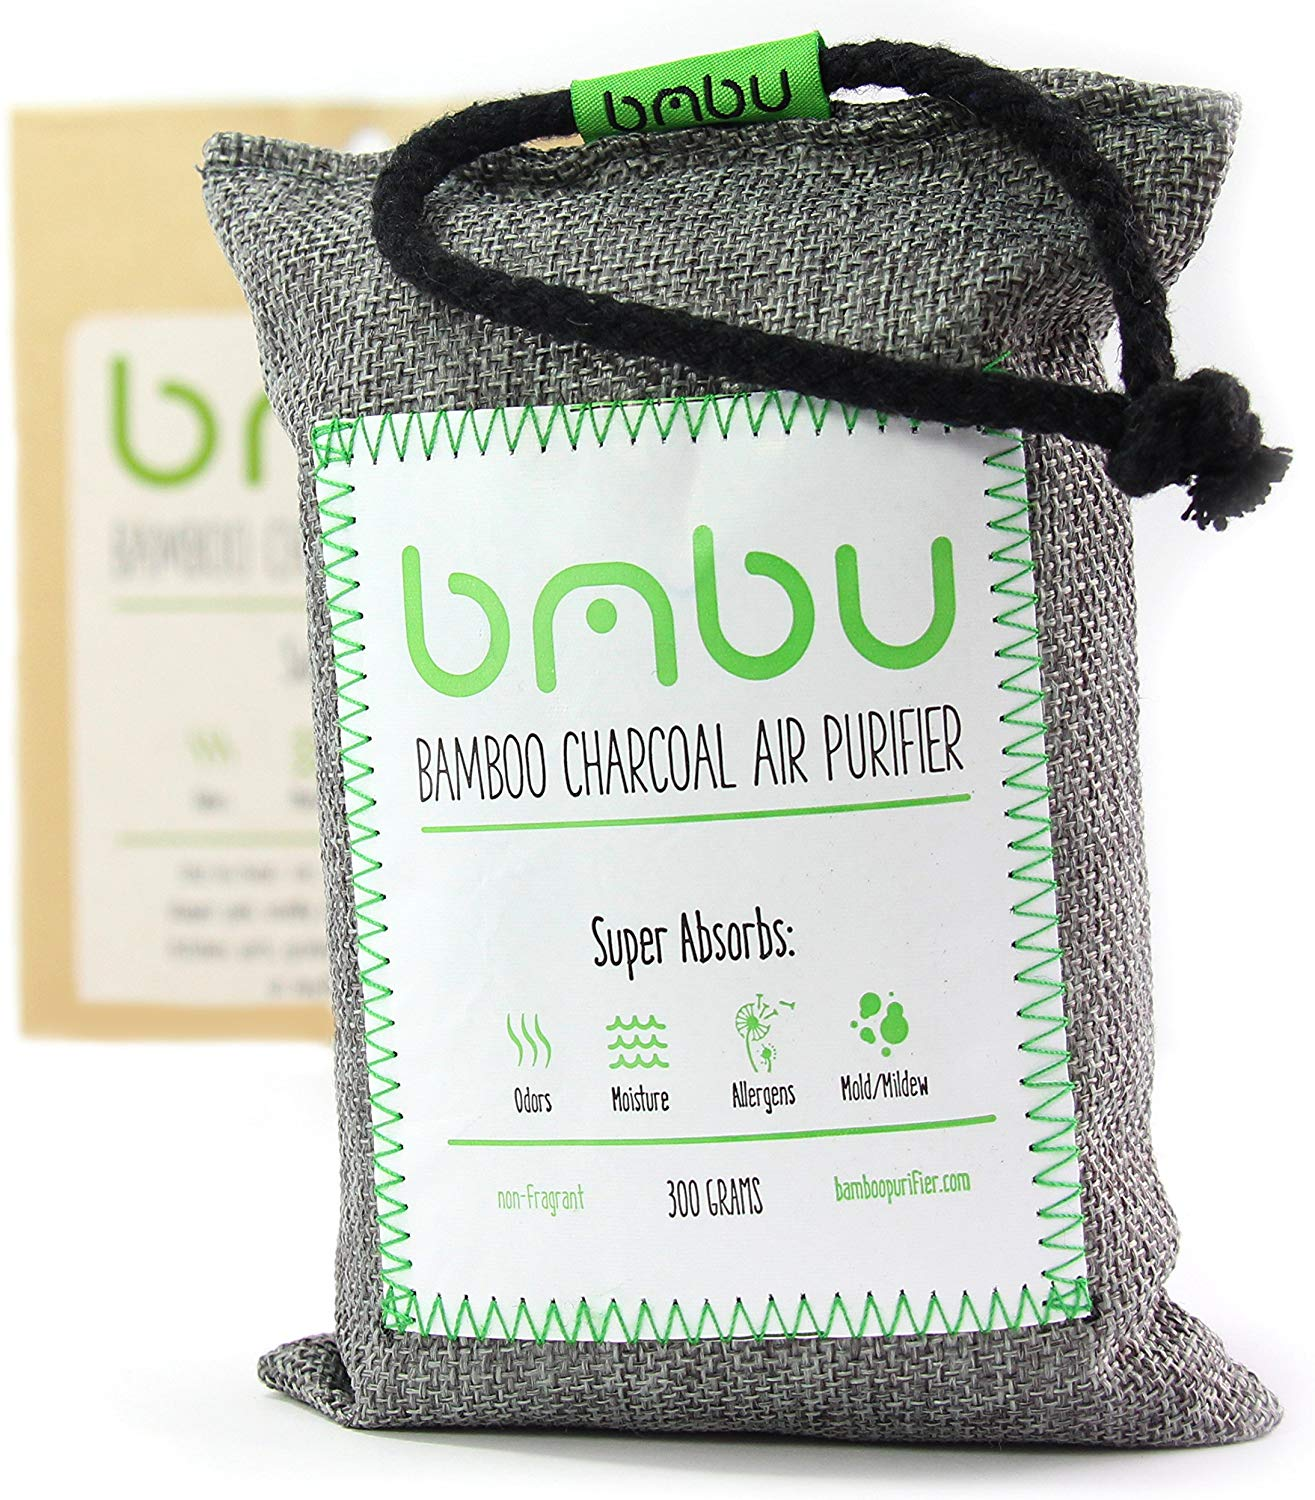 bmbu Bamboo Charcoal Car Deodorizer/Car Freshener Bag - Remove Odor, Control Moisture & Purifier Your Car, Closet, Bathroom, Kitchen, Litter Box - Non-Fragrant Alternative to Sprays (1),